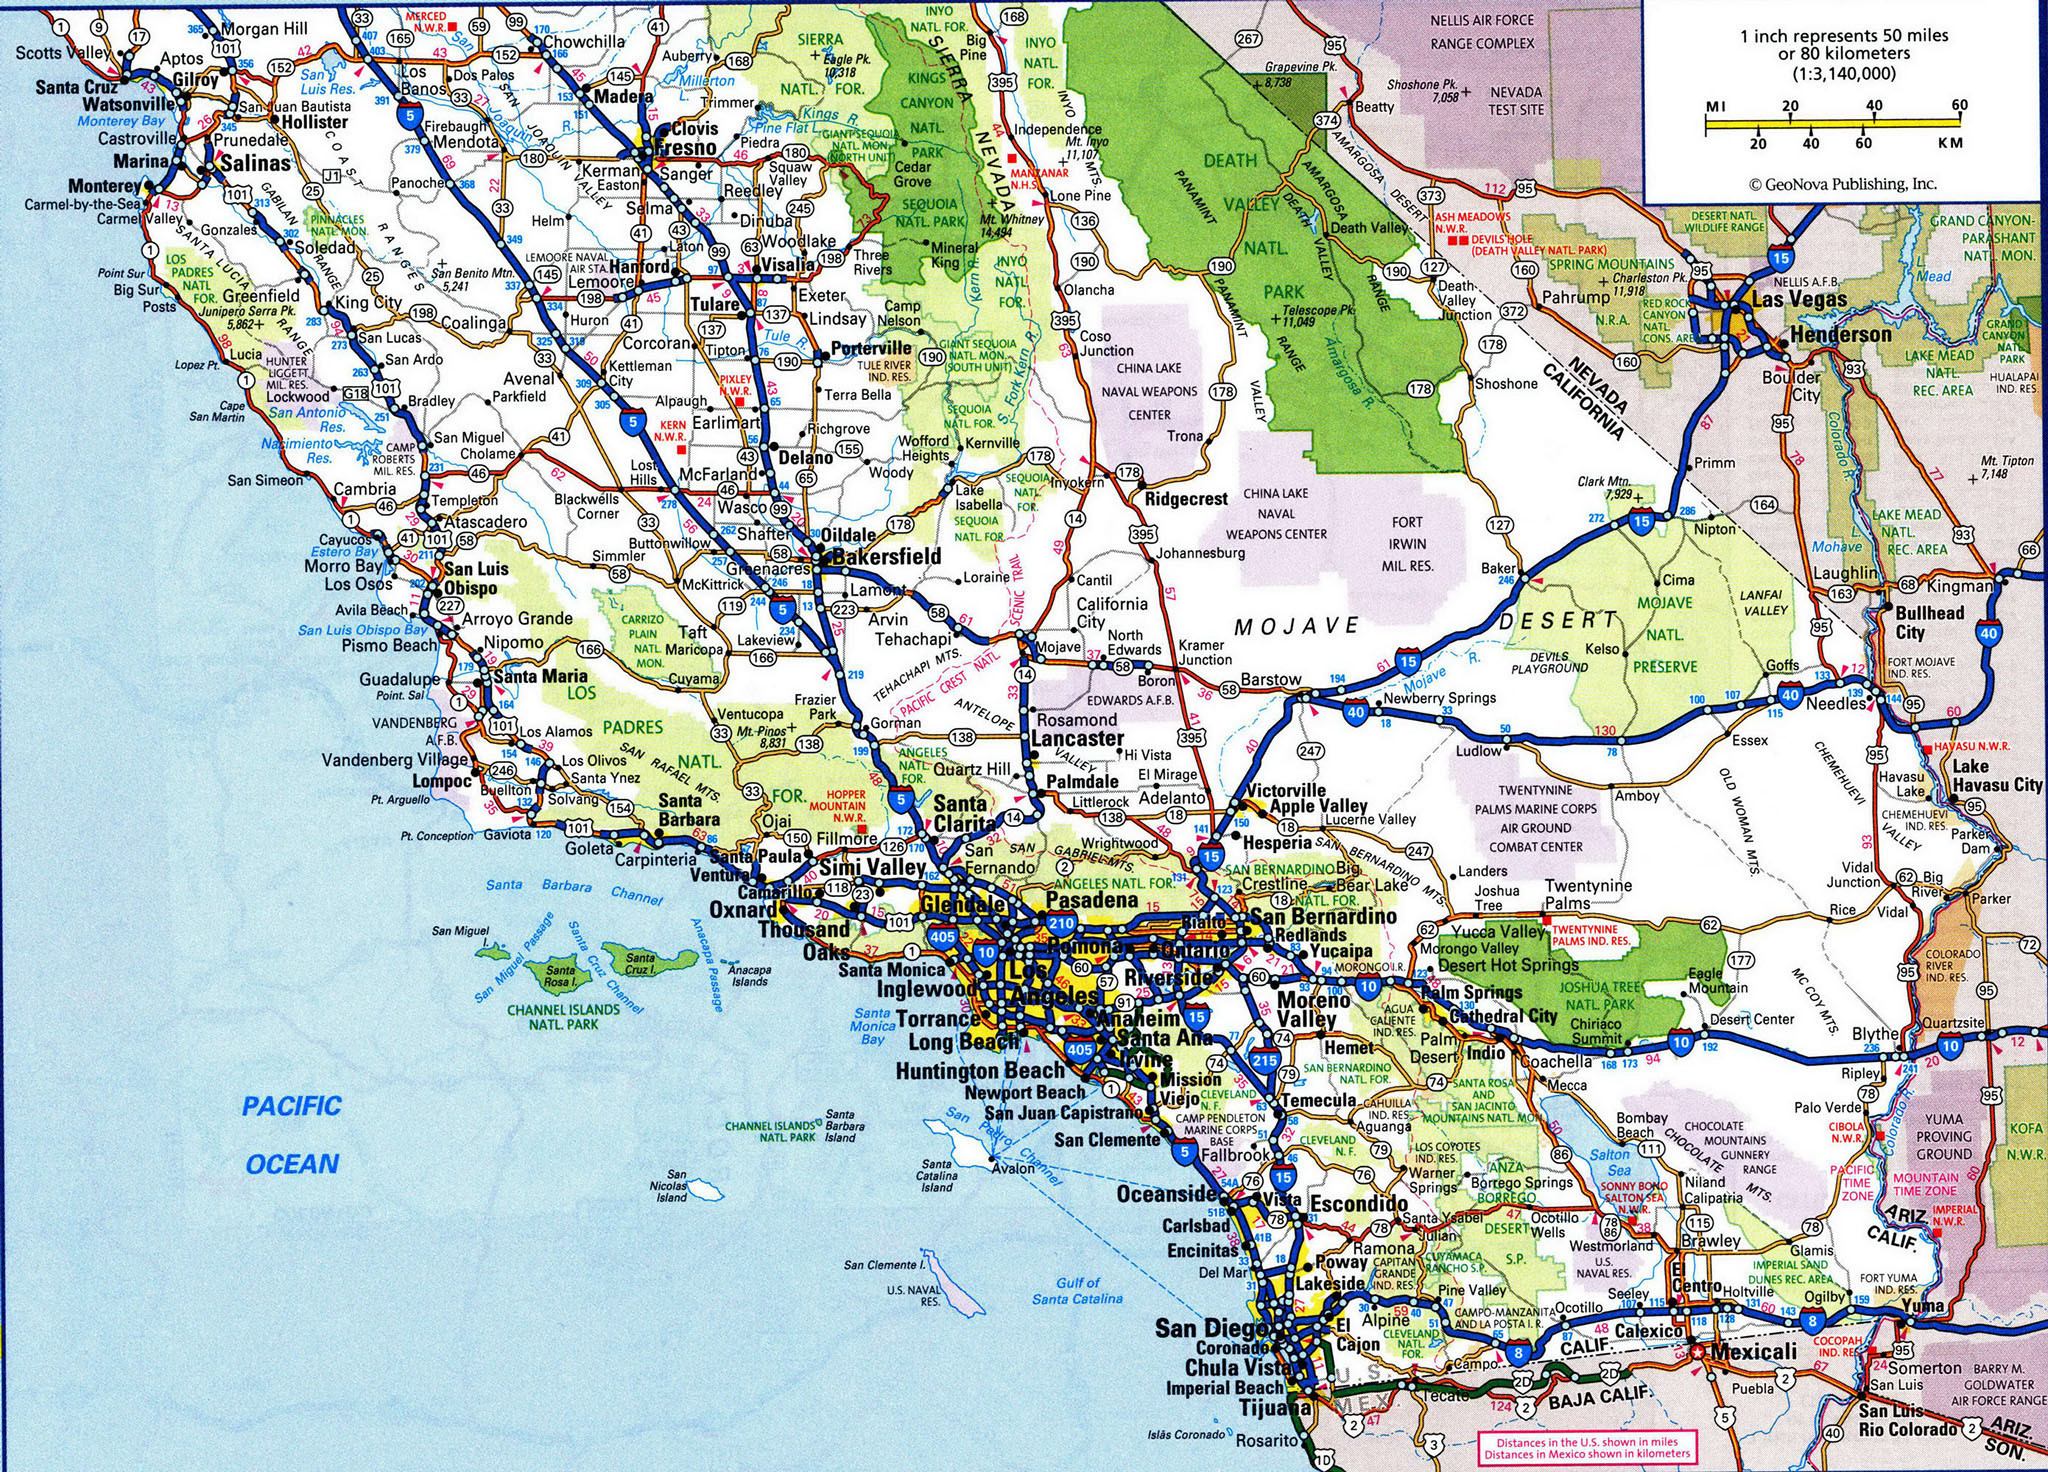 Map Of So Cal Freeways New Perfect Printable Road Map California - Detailed Map Of California Cities